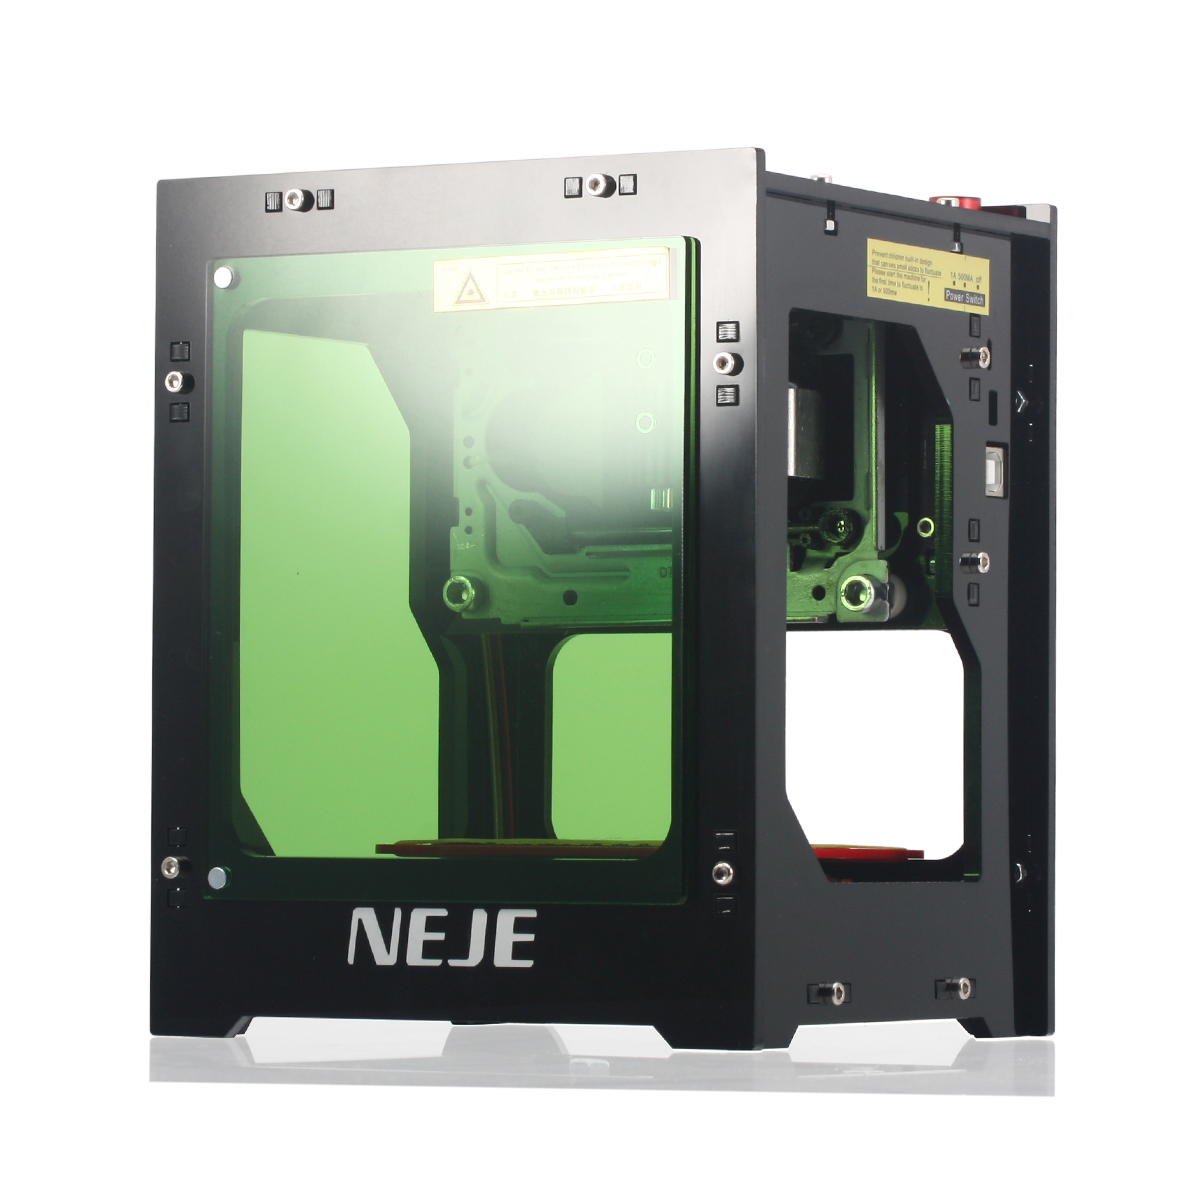 NEJE DK-BL 1500mW 405nm USB Laser Engraver Printer Laser Engraving Machine bluetooth APP Connection Built-in Battery